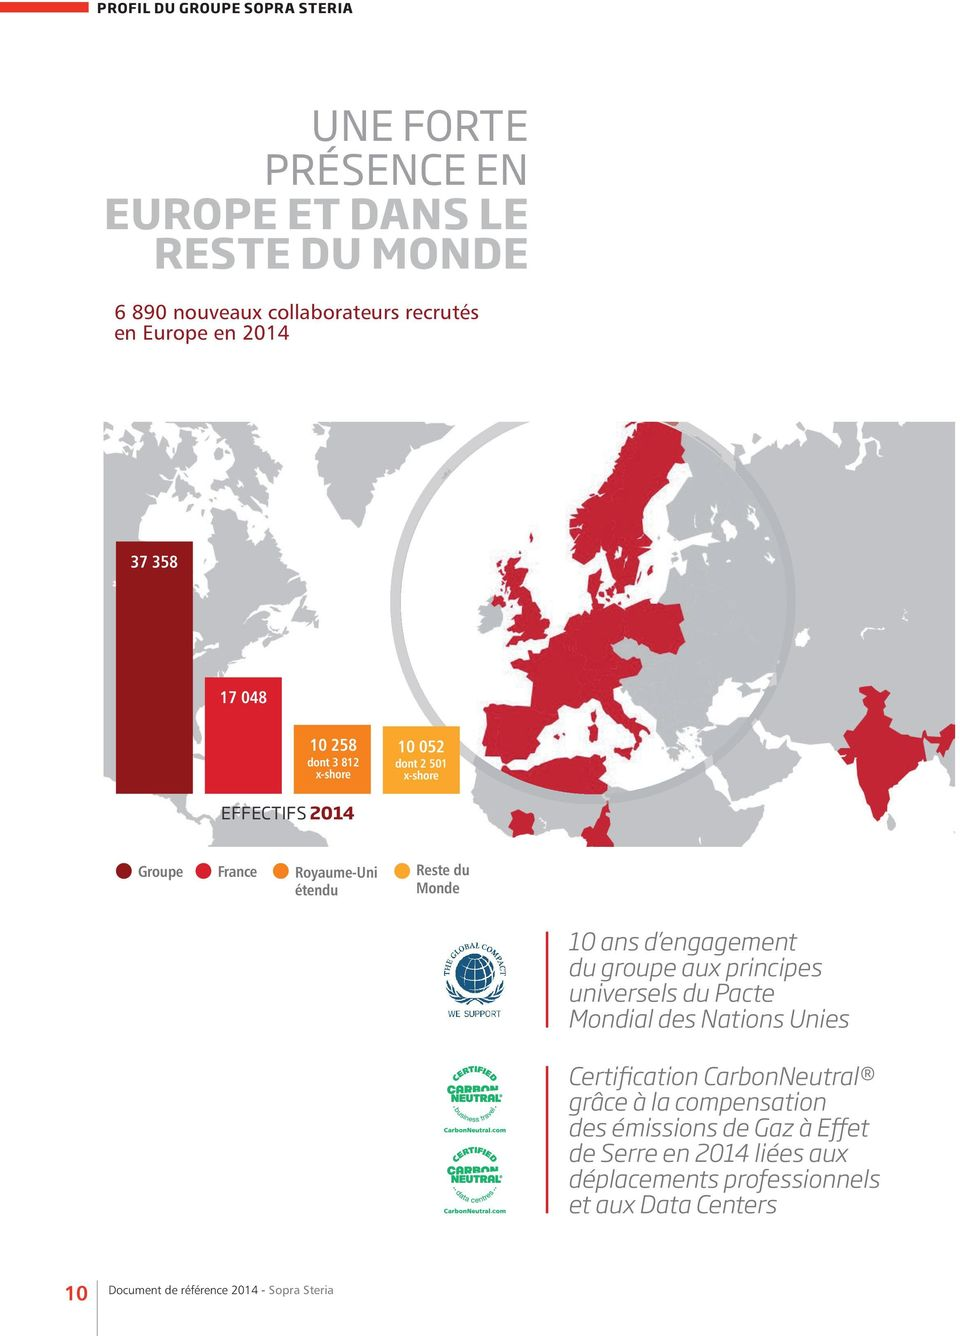 Reste du Monde 10 ans d engagement du g roupe aux principes universels du Pacte Mondial des Nations Unies Certification